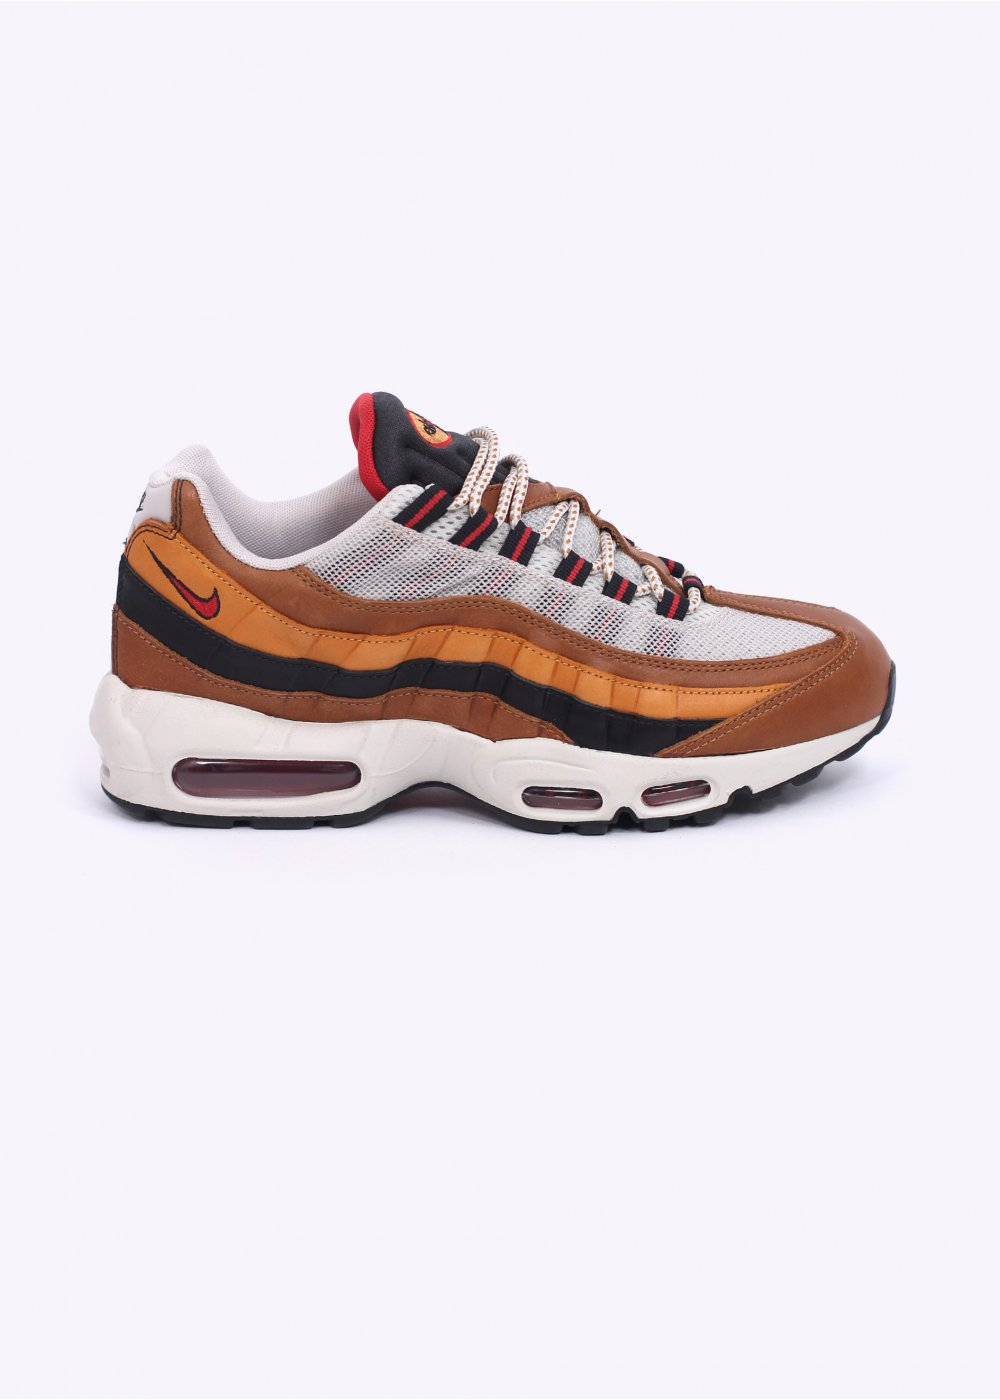 c36e61b8fd21 Nike QS Air Max 95  Escape Pack  - Baroque Brown   Ale Brown   Red Clay    Flat Opa